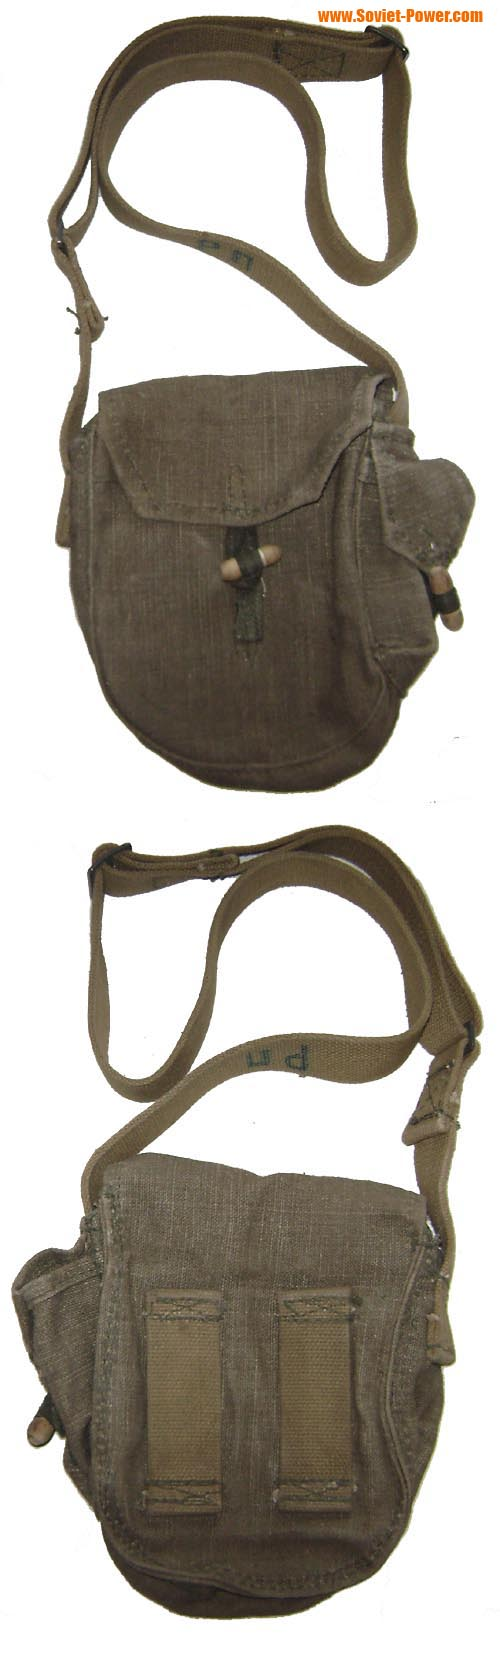 Russian Army drum magazines bag for PPSH and RPD machine guns